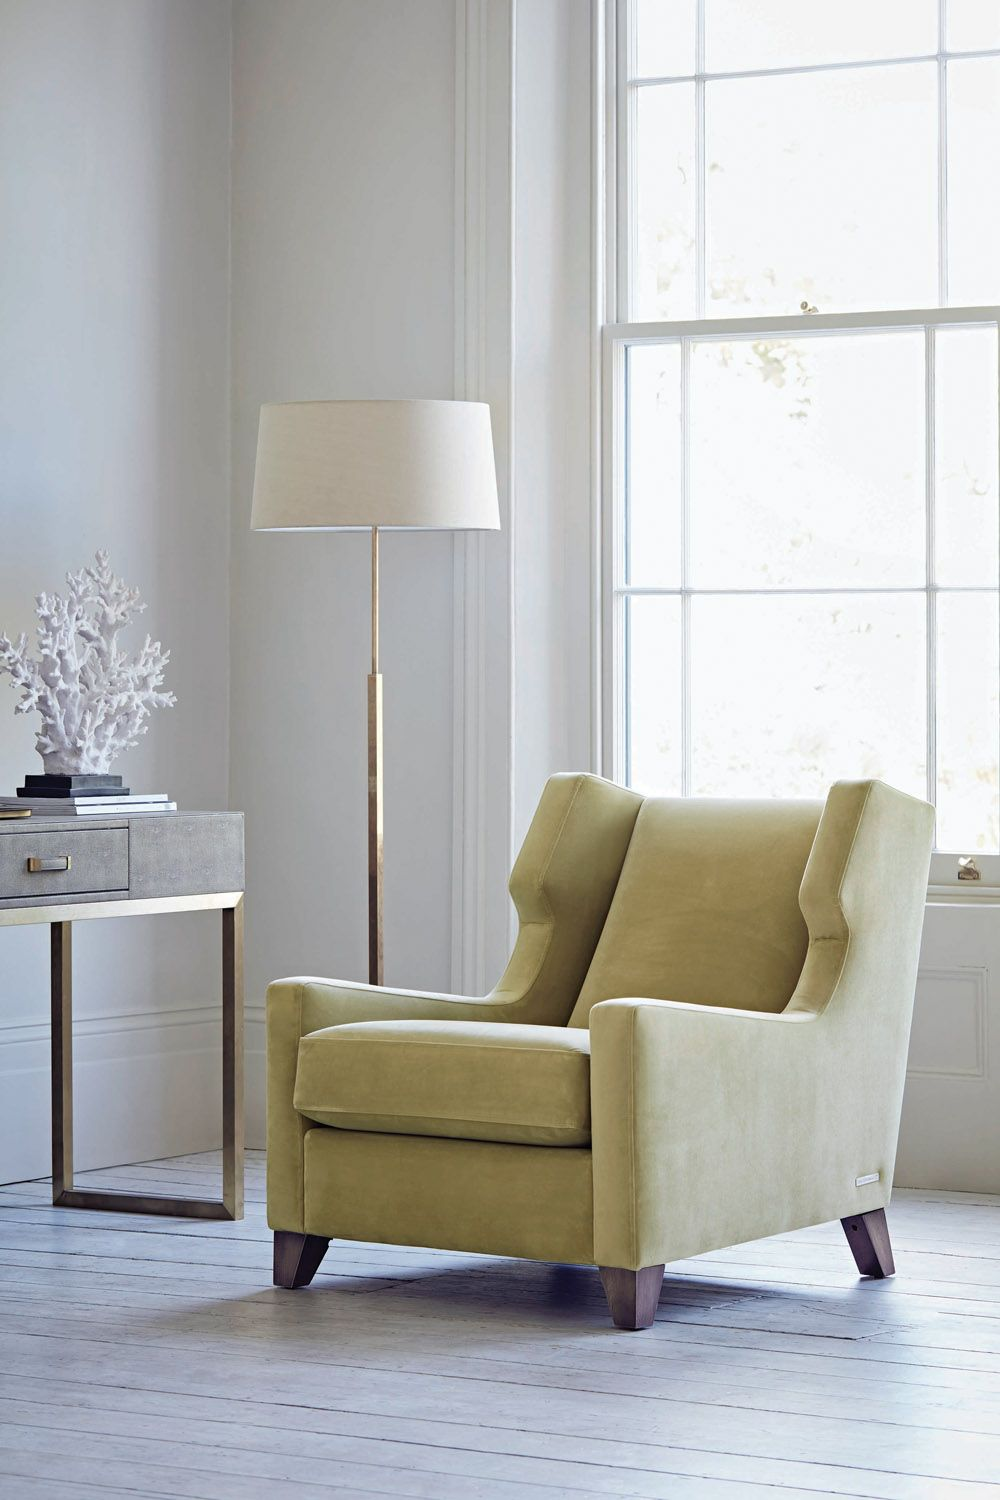 Merveilleux Gold Armchair   A Comfy Contemporary Twist On A Classic Wing Back Chair.